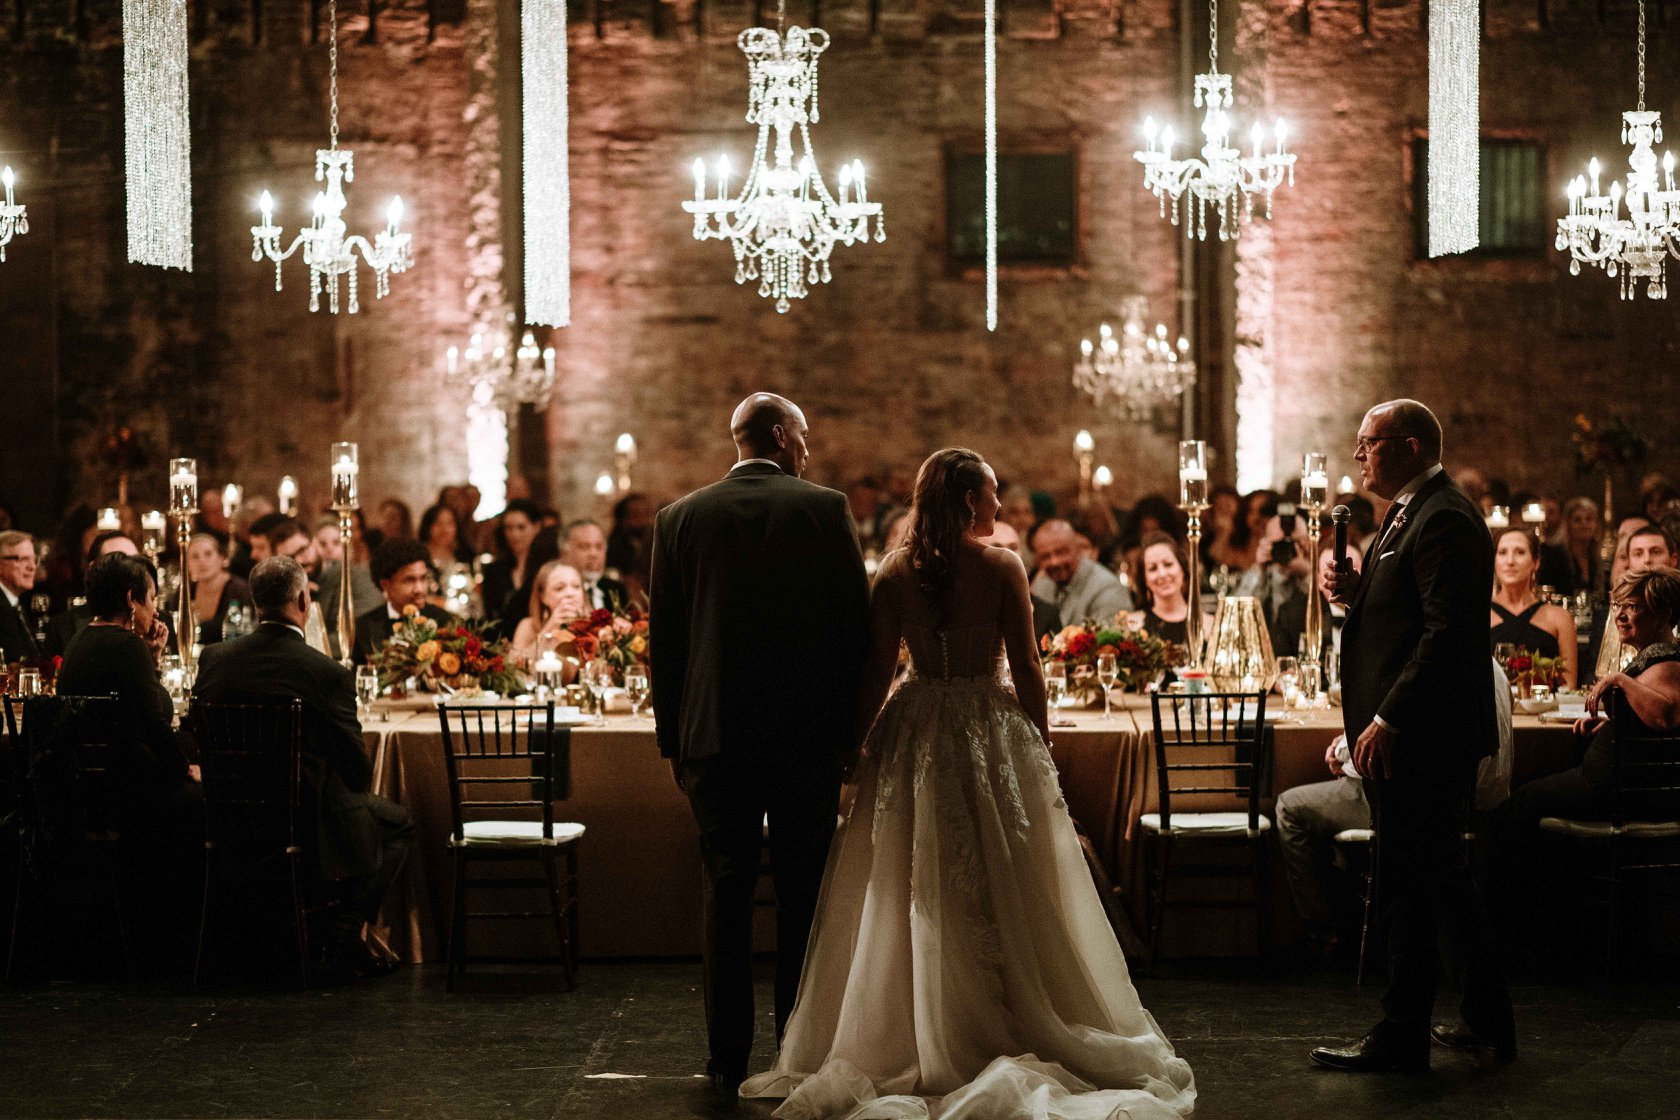 A bride and groom standing beside the banquet table as a guest is giving a toast